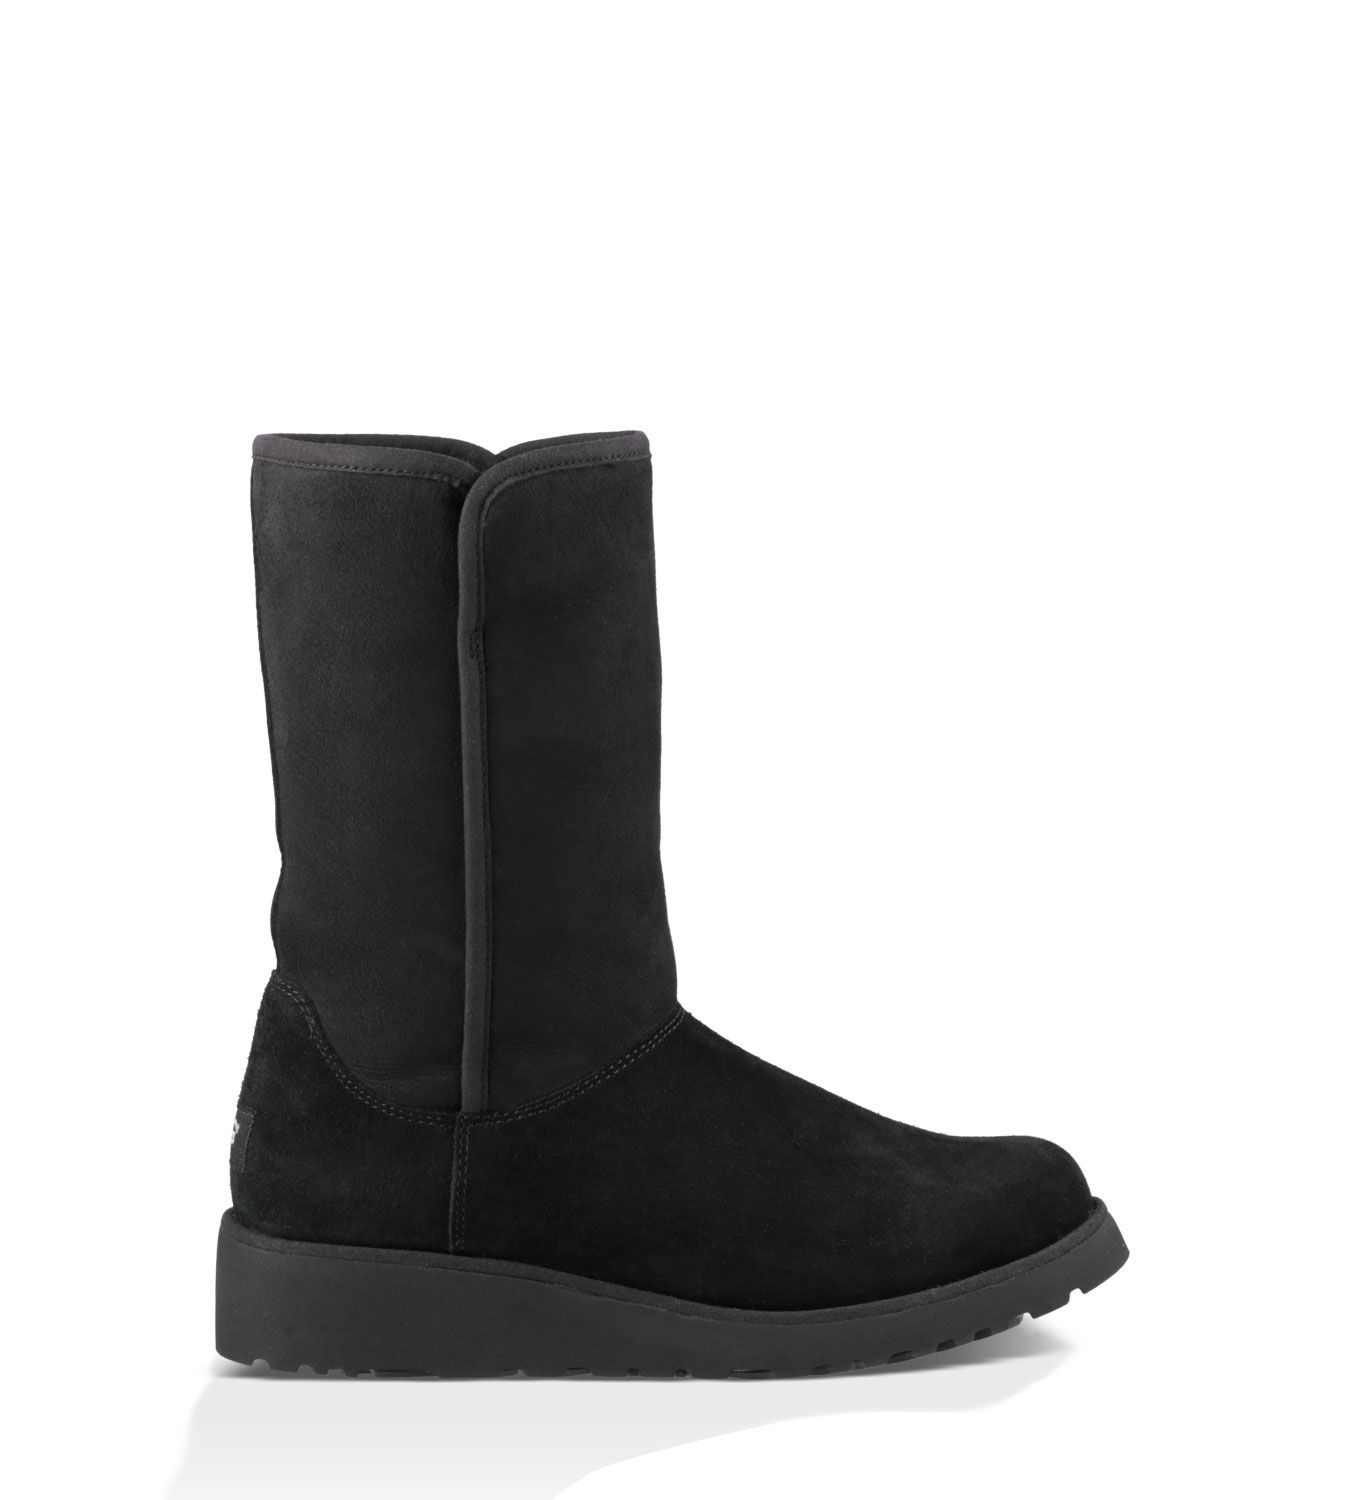 amie ugg boots women nz